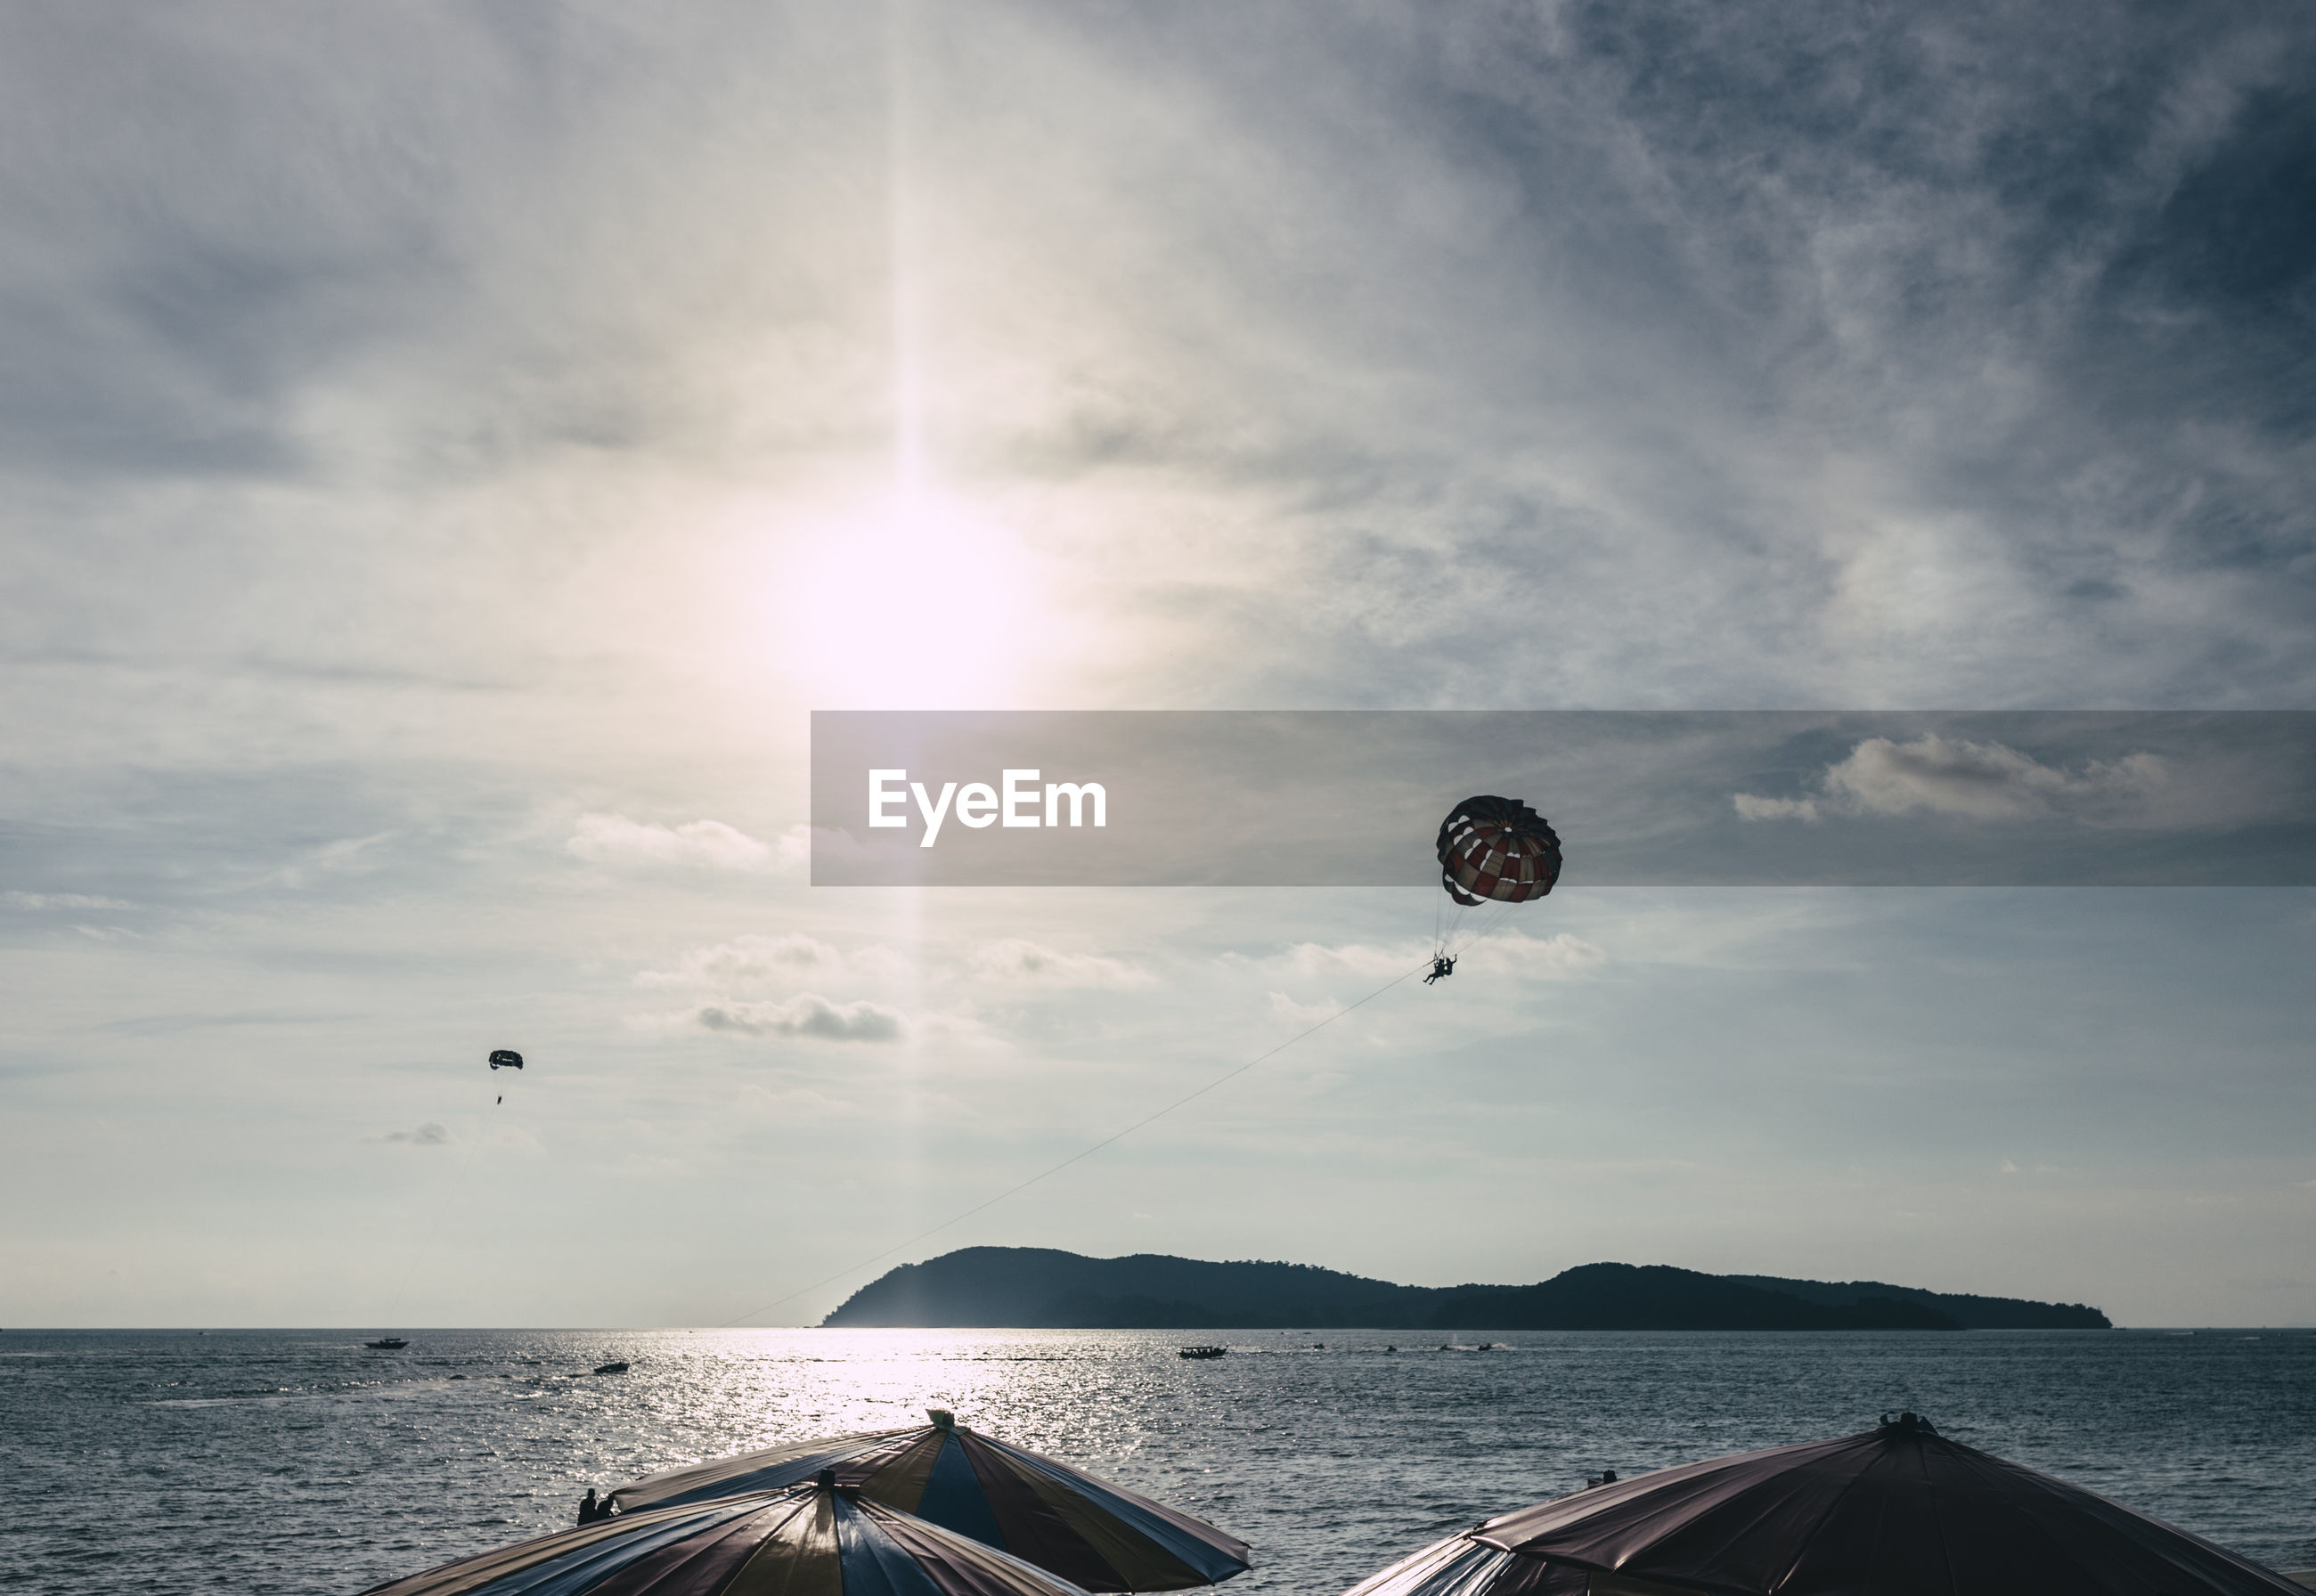 People paragliding over sea against cloudy sky in sunny day